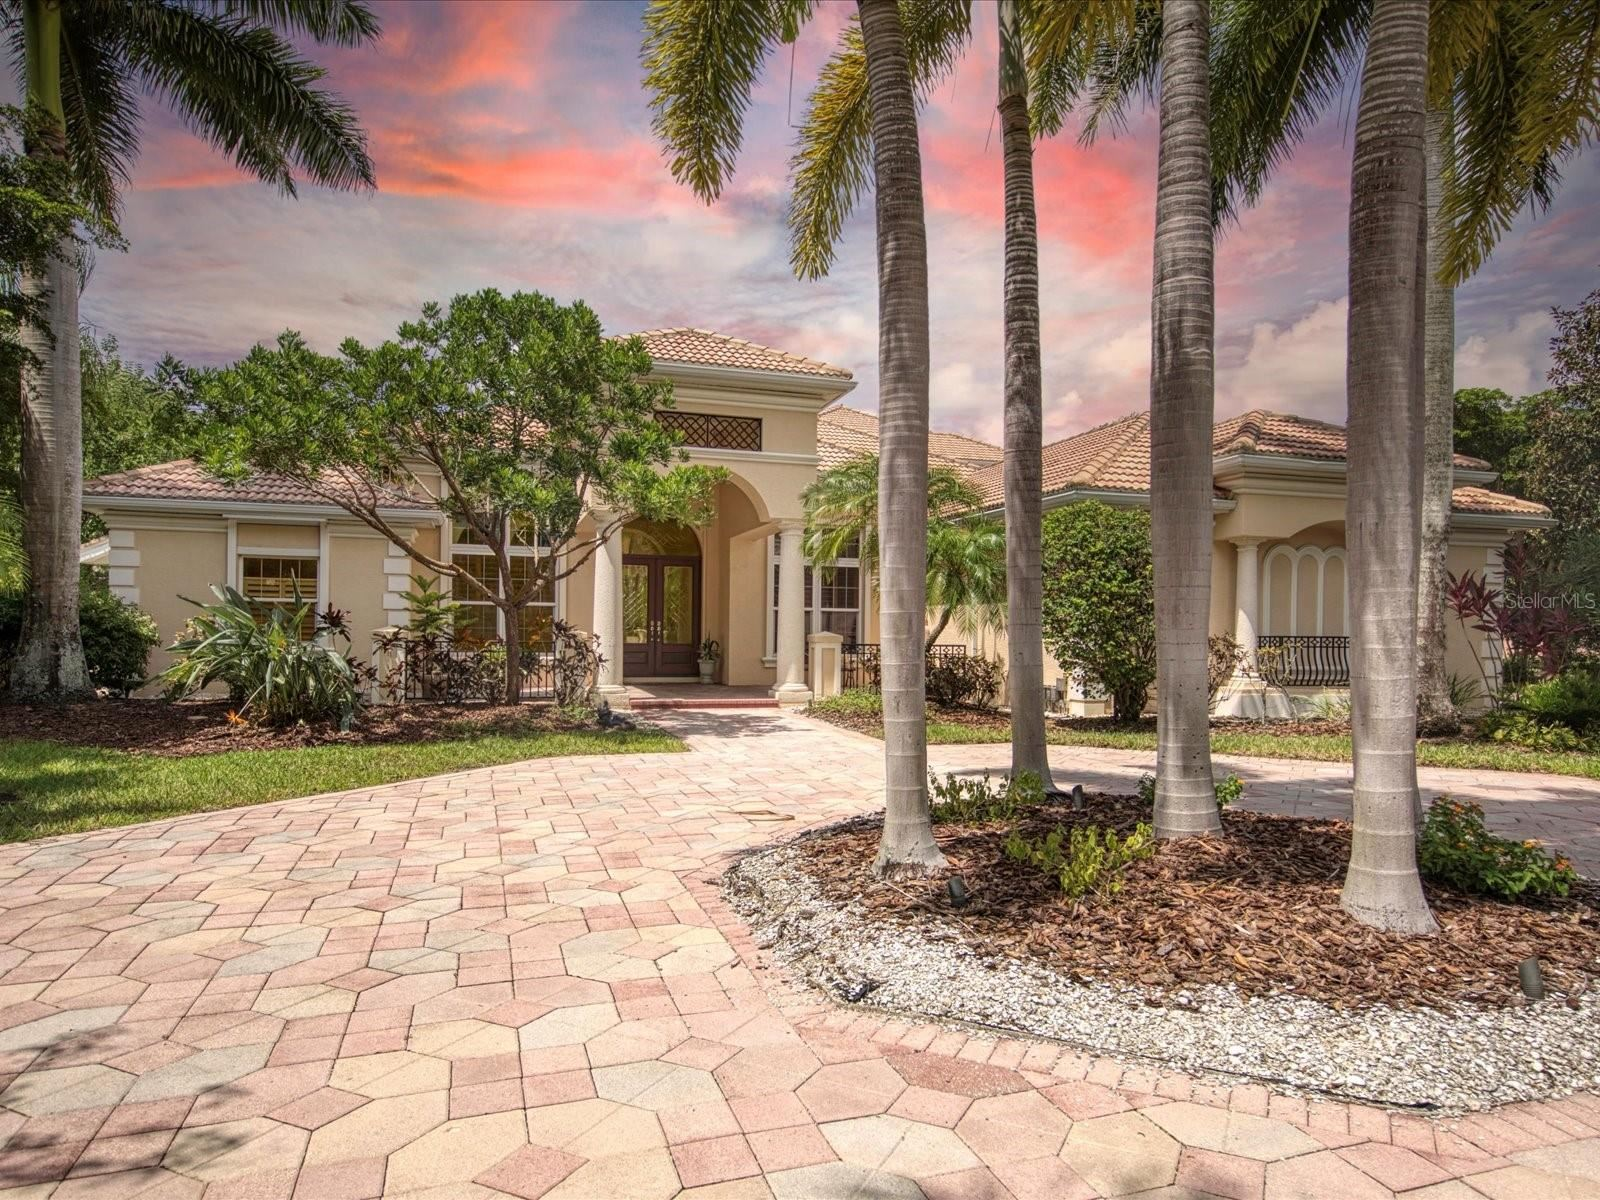 Photo of 7023 PORTMARNOCK PLACE, LAKEWOOD RANCH, FL 34202 (MLS # A4507513)